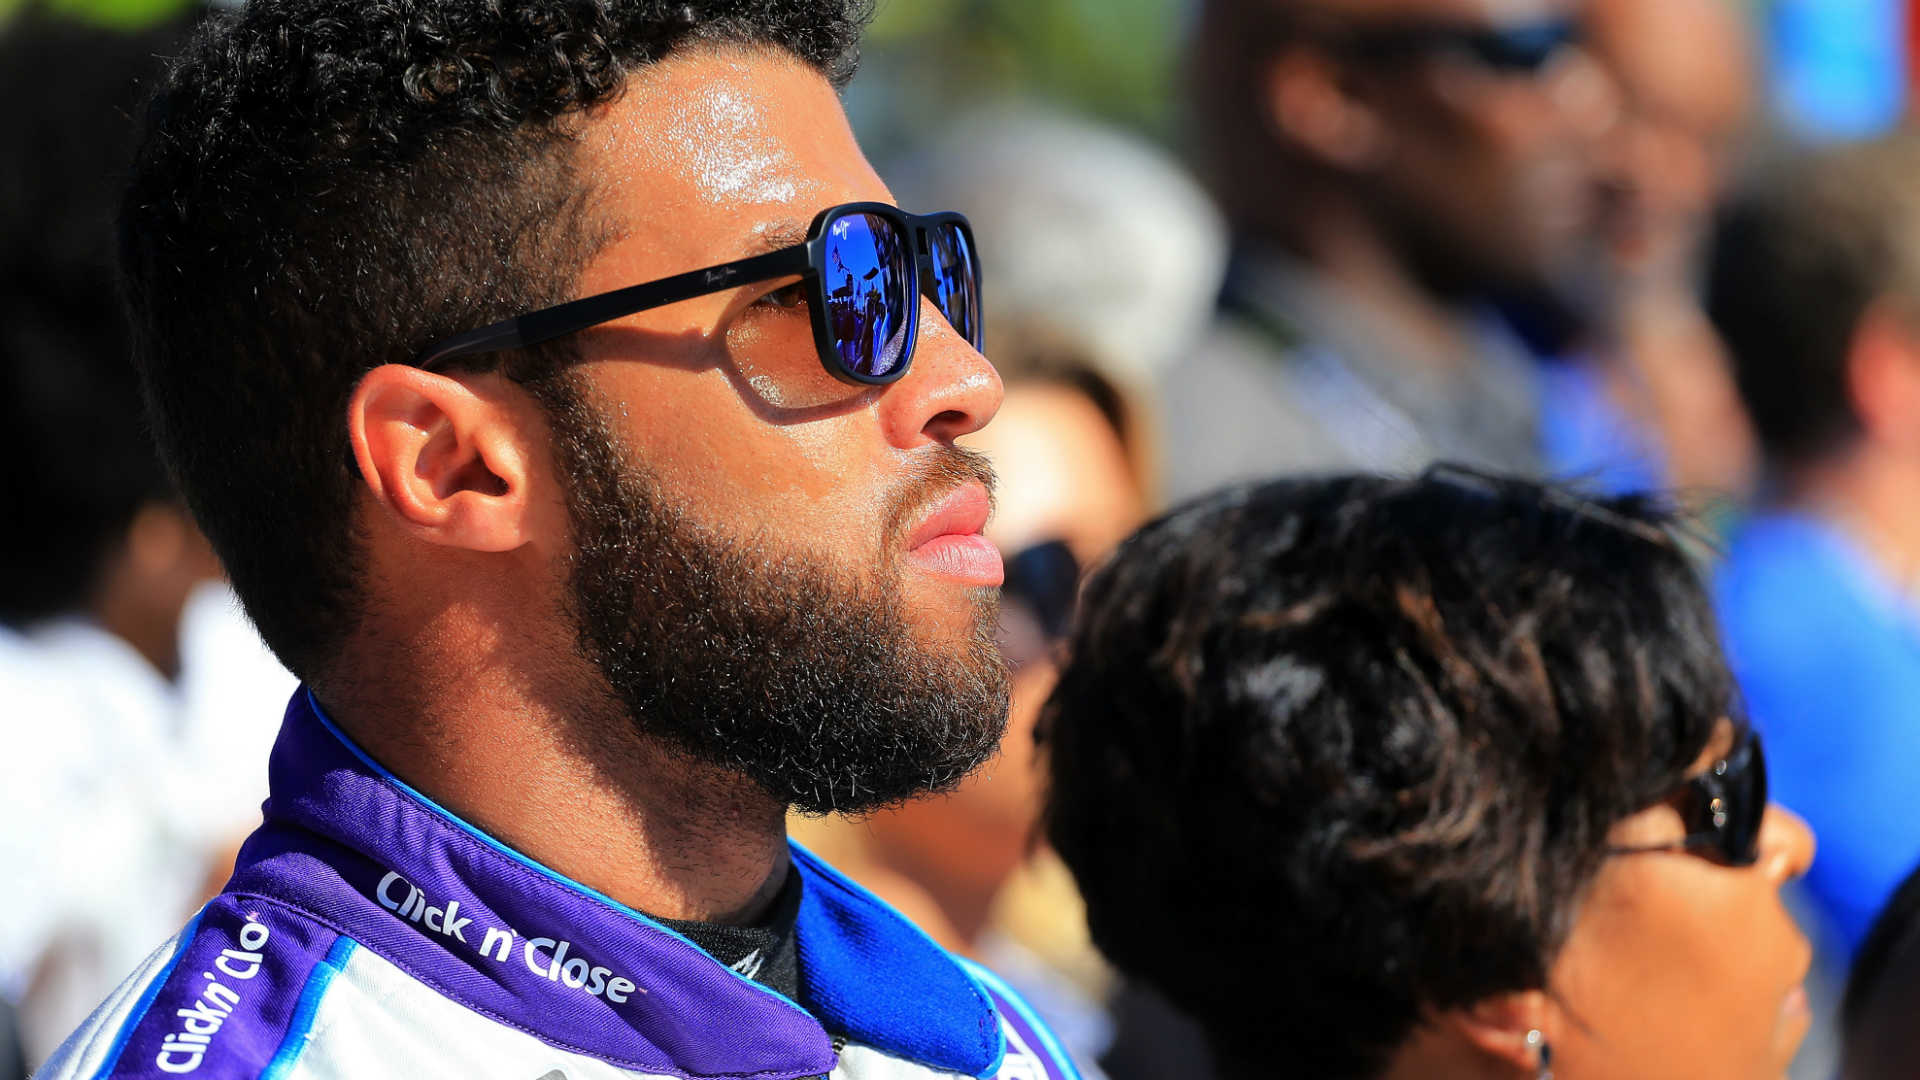 Darrell 'Bubba' Wallace Jr. tearful after runner-up Daytona 500 finish